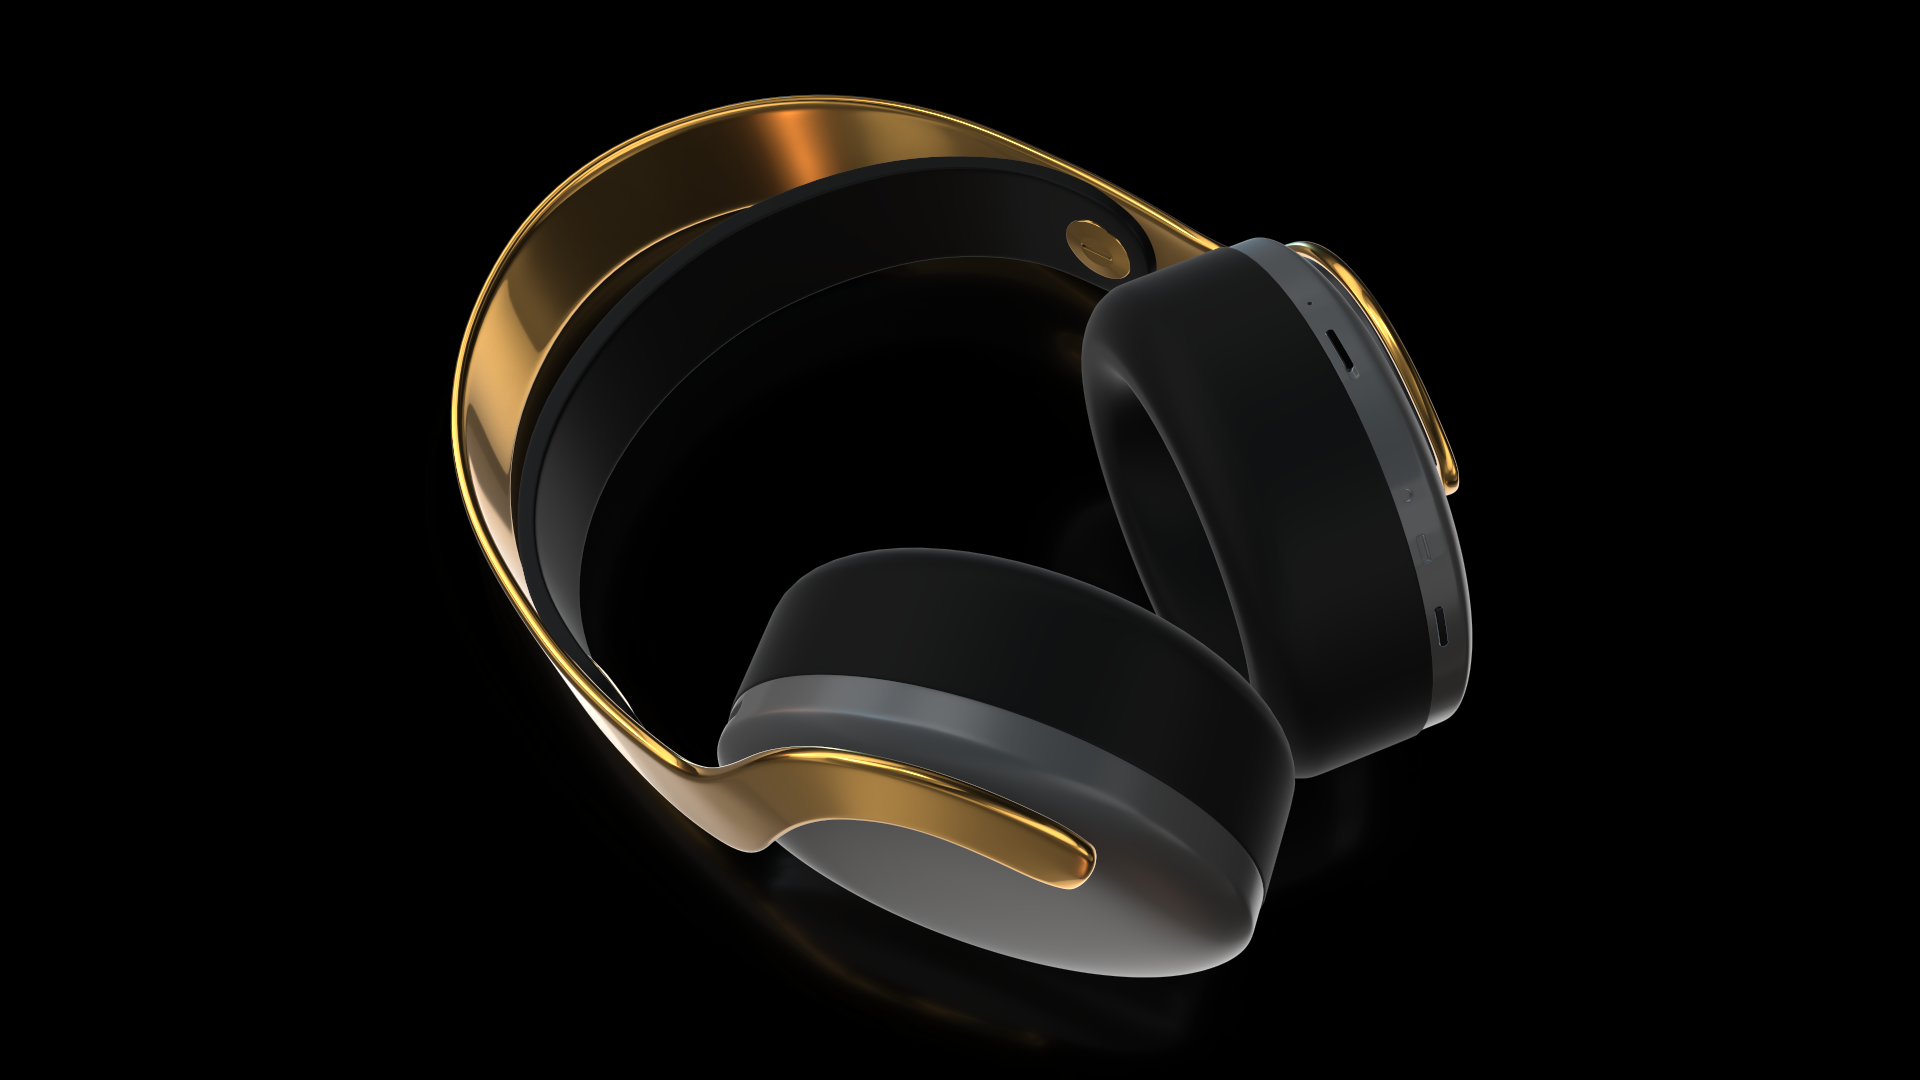 24K Gold PS5 Headset